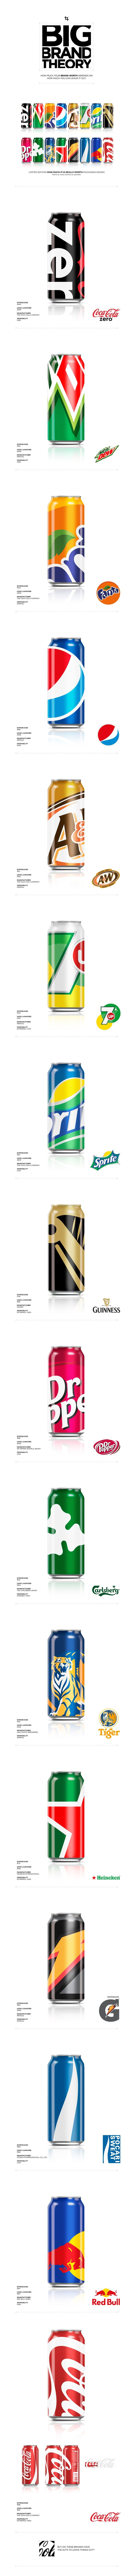 BIG BRAND THEORY: Packaging Design / Ewan Yap *** Creating a series of experimental packaging design based on the principle of BIG BRAND THEORY. The main focus is to have each brand's identity meticulously and uniquely cropped out of the packaging as much as possible yet maintaining it's integrity and comprehension at the same time enhancing the aesthetic value…